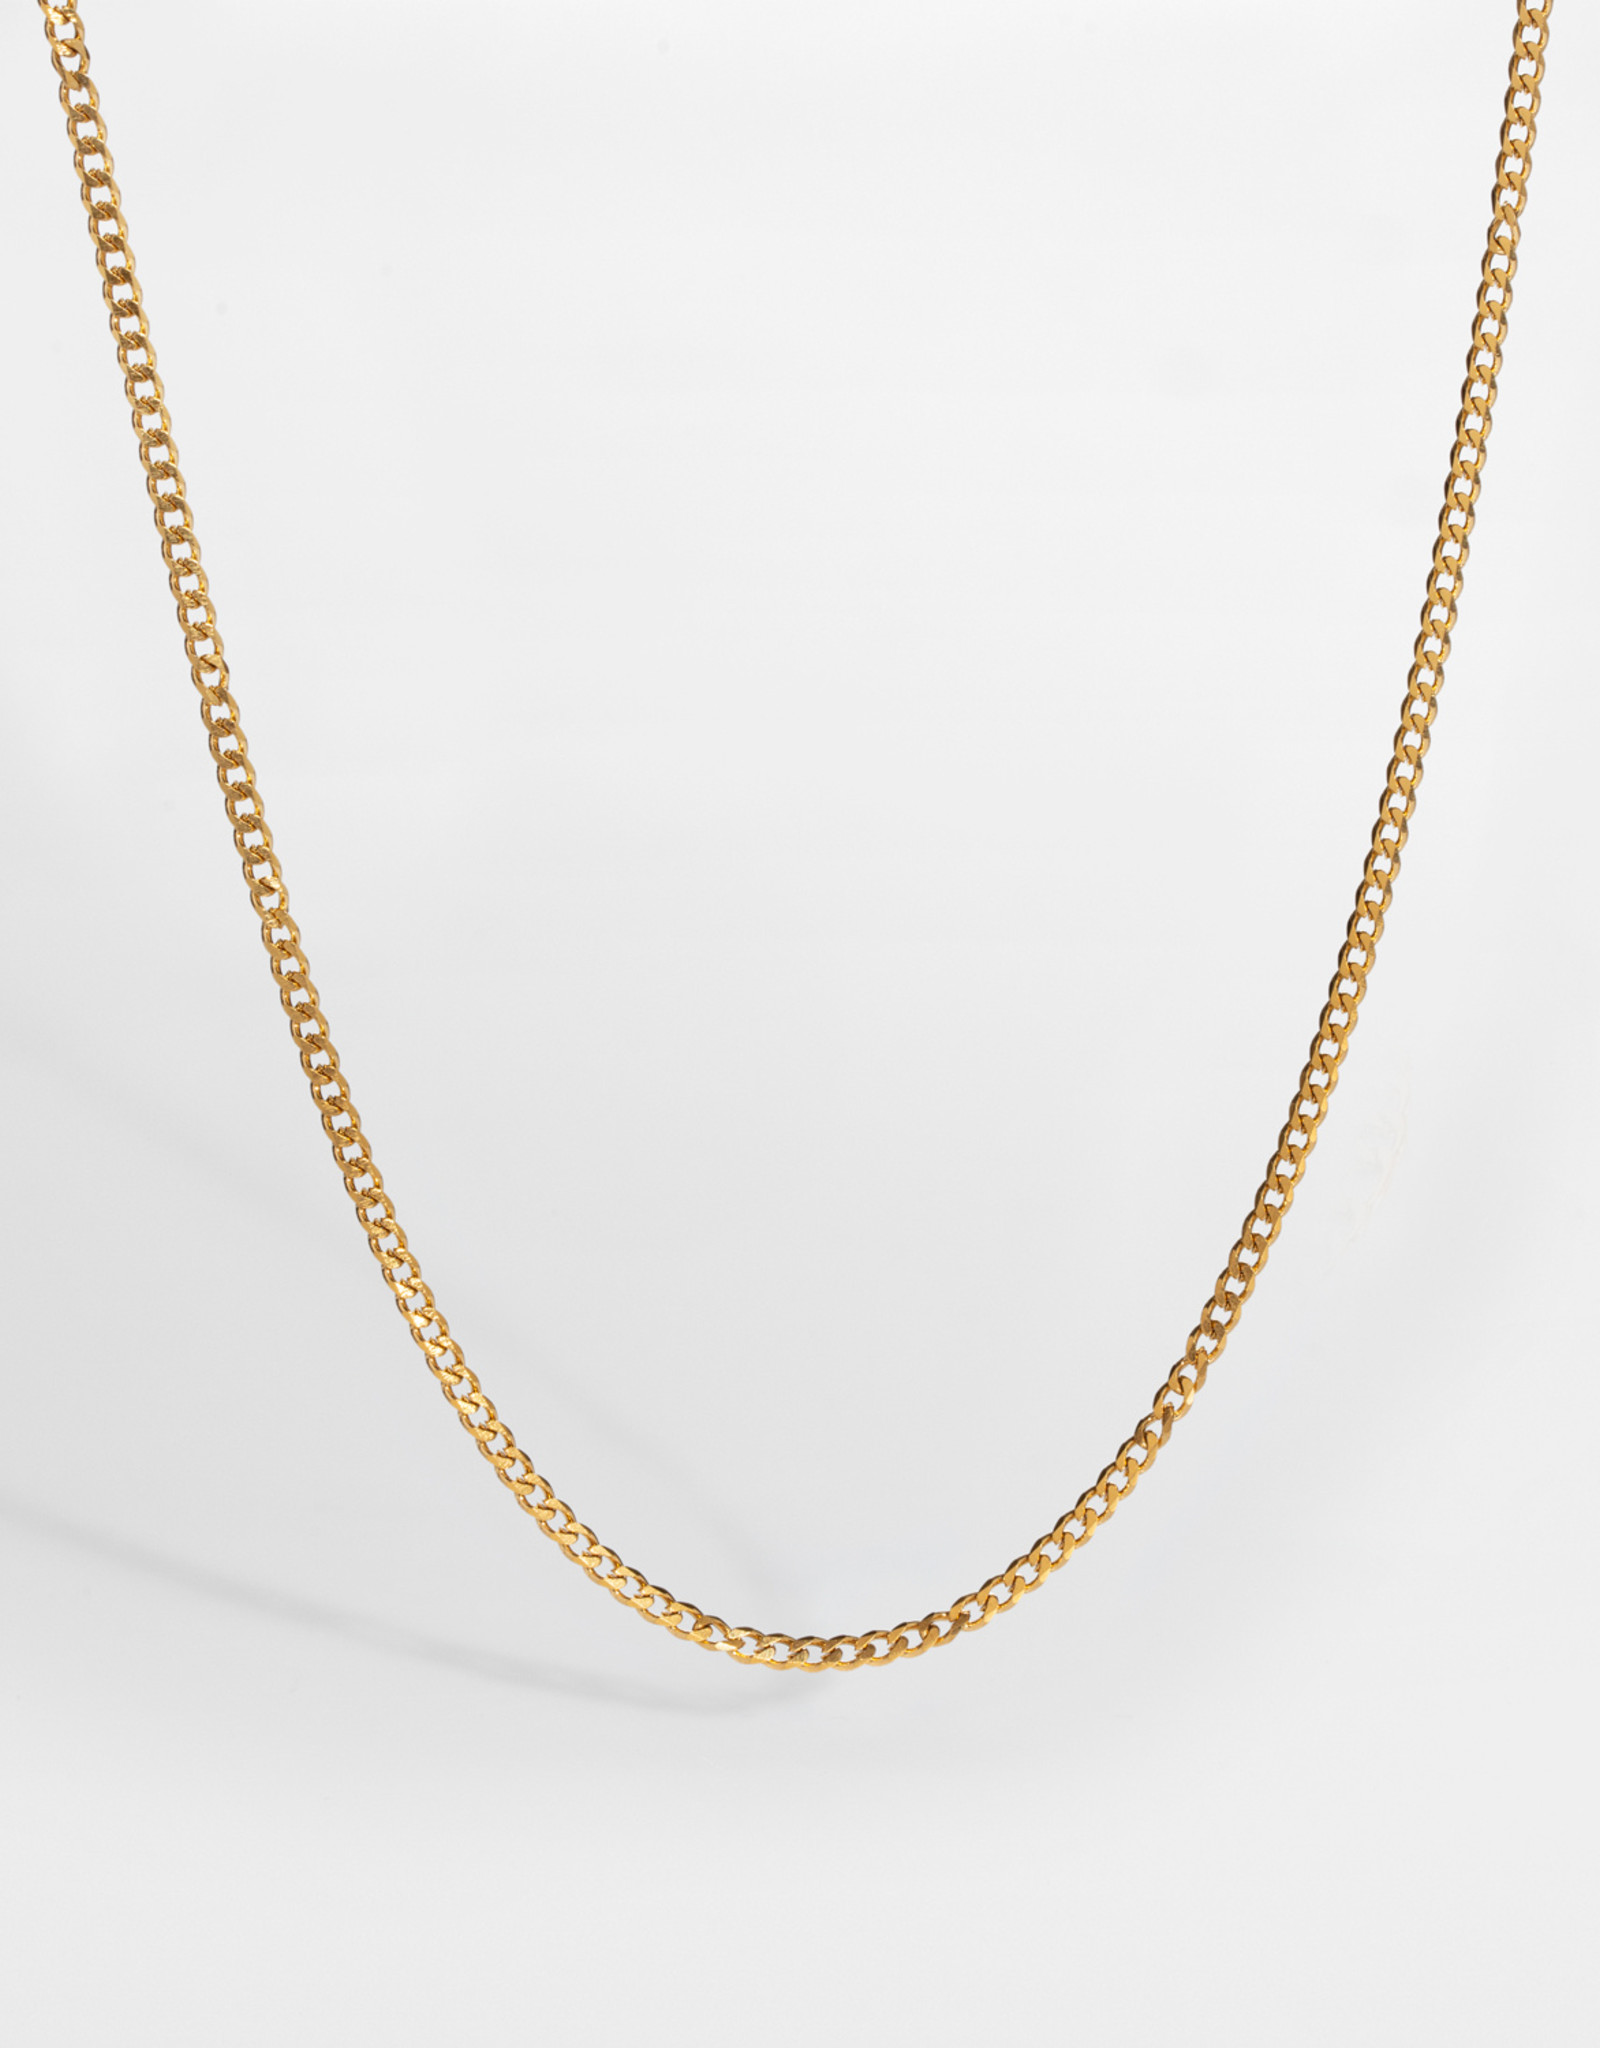 Northern Legacy Nl Minimal Sequence Necklace - Gold Tone